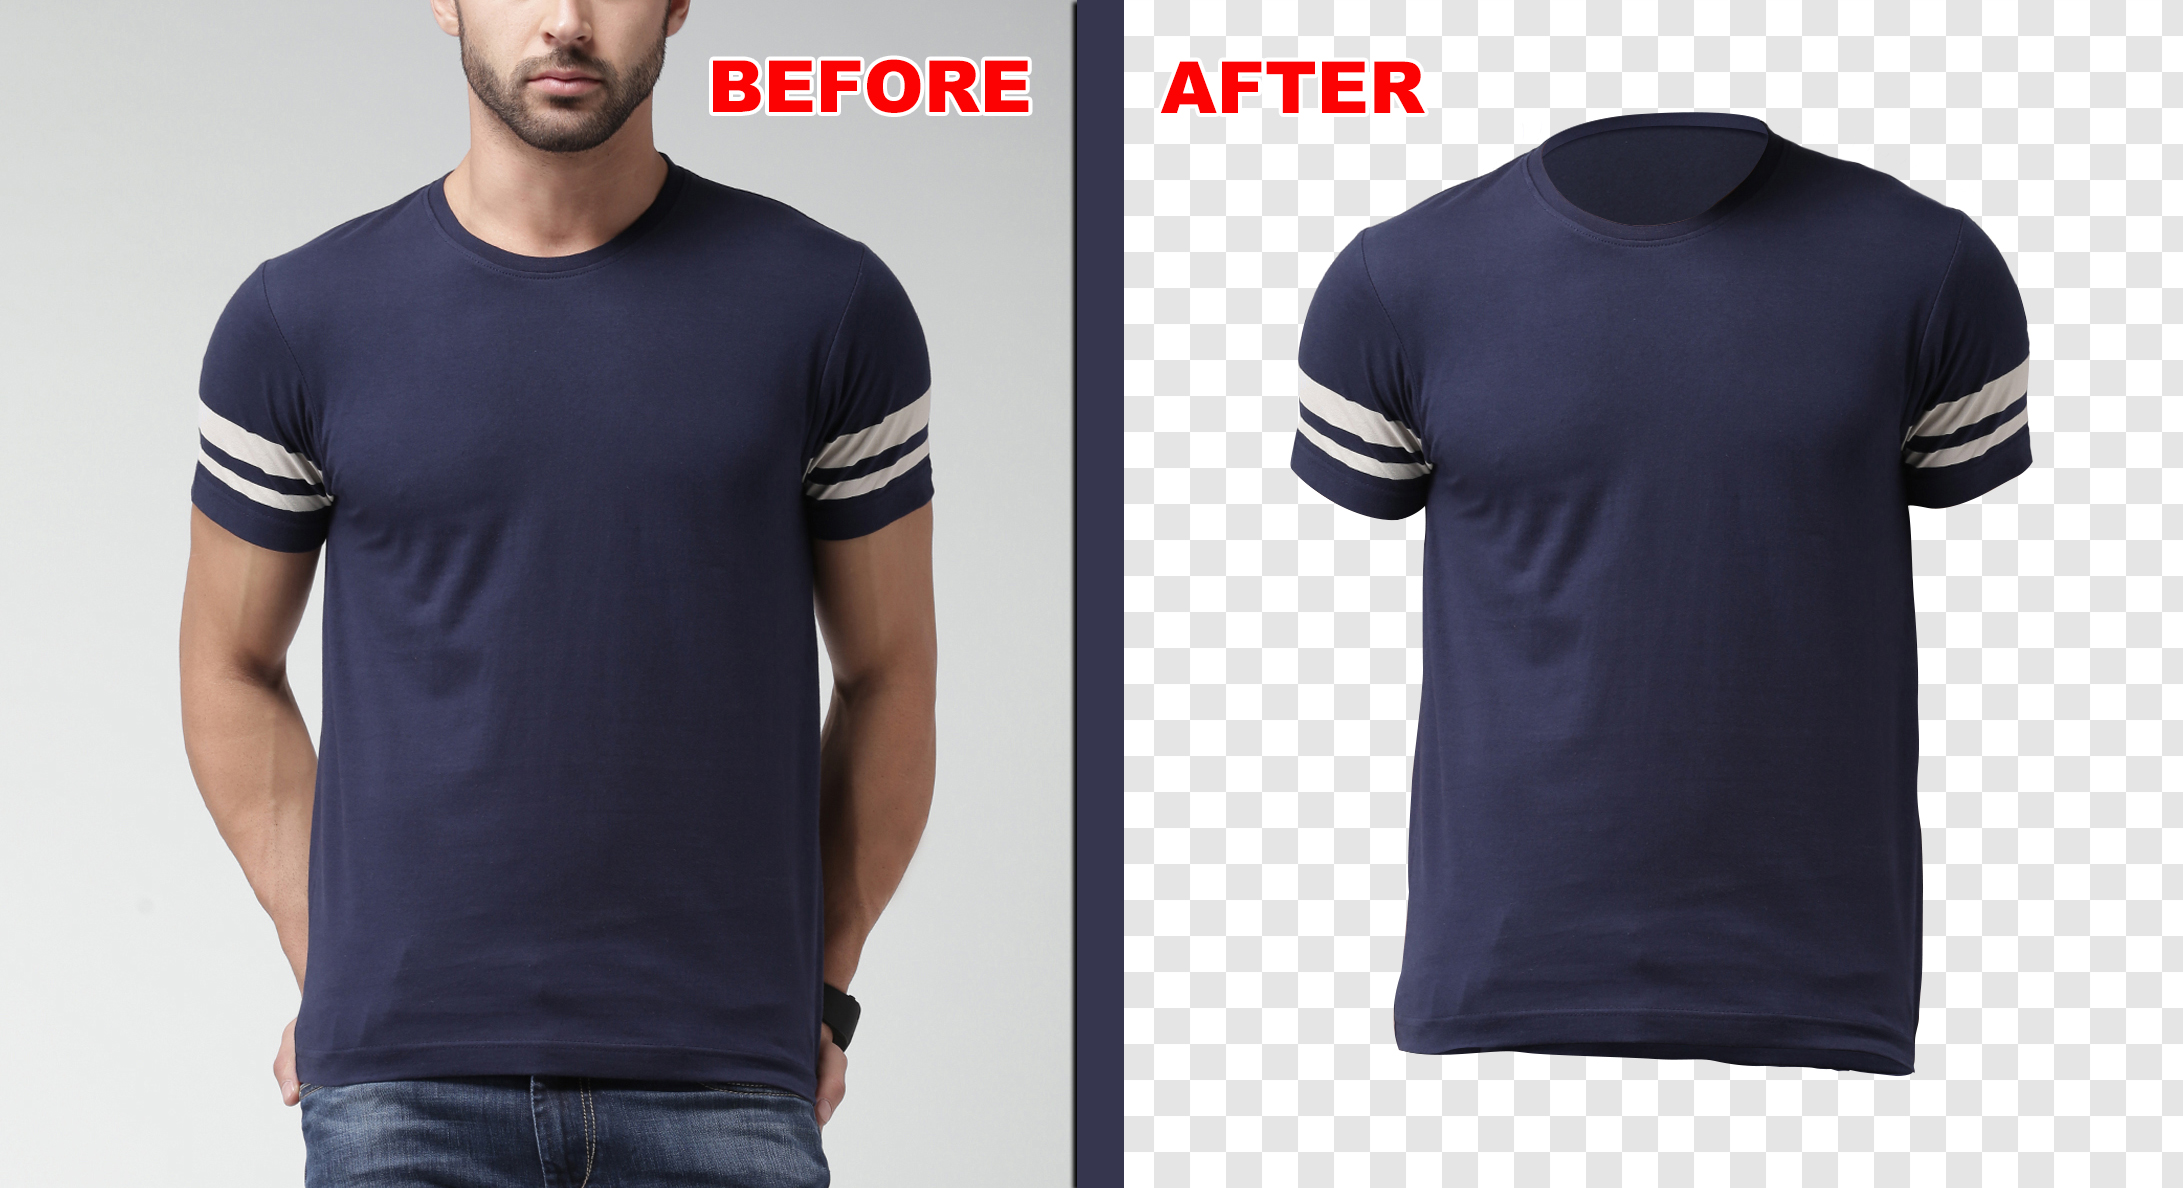 do adobe Photoshop edit, Photo retouching, digital painting